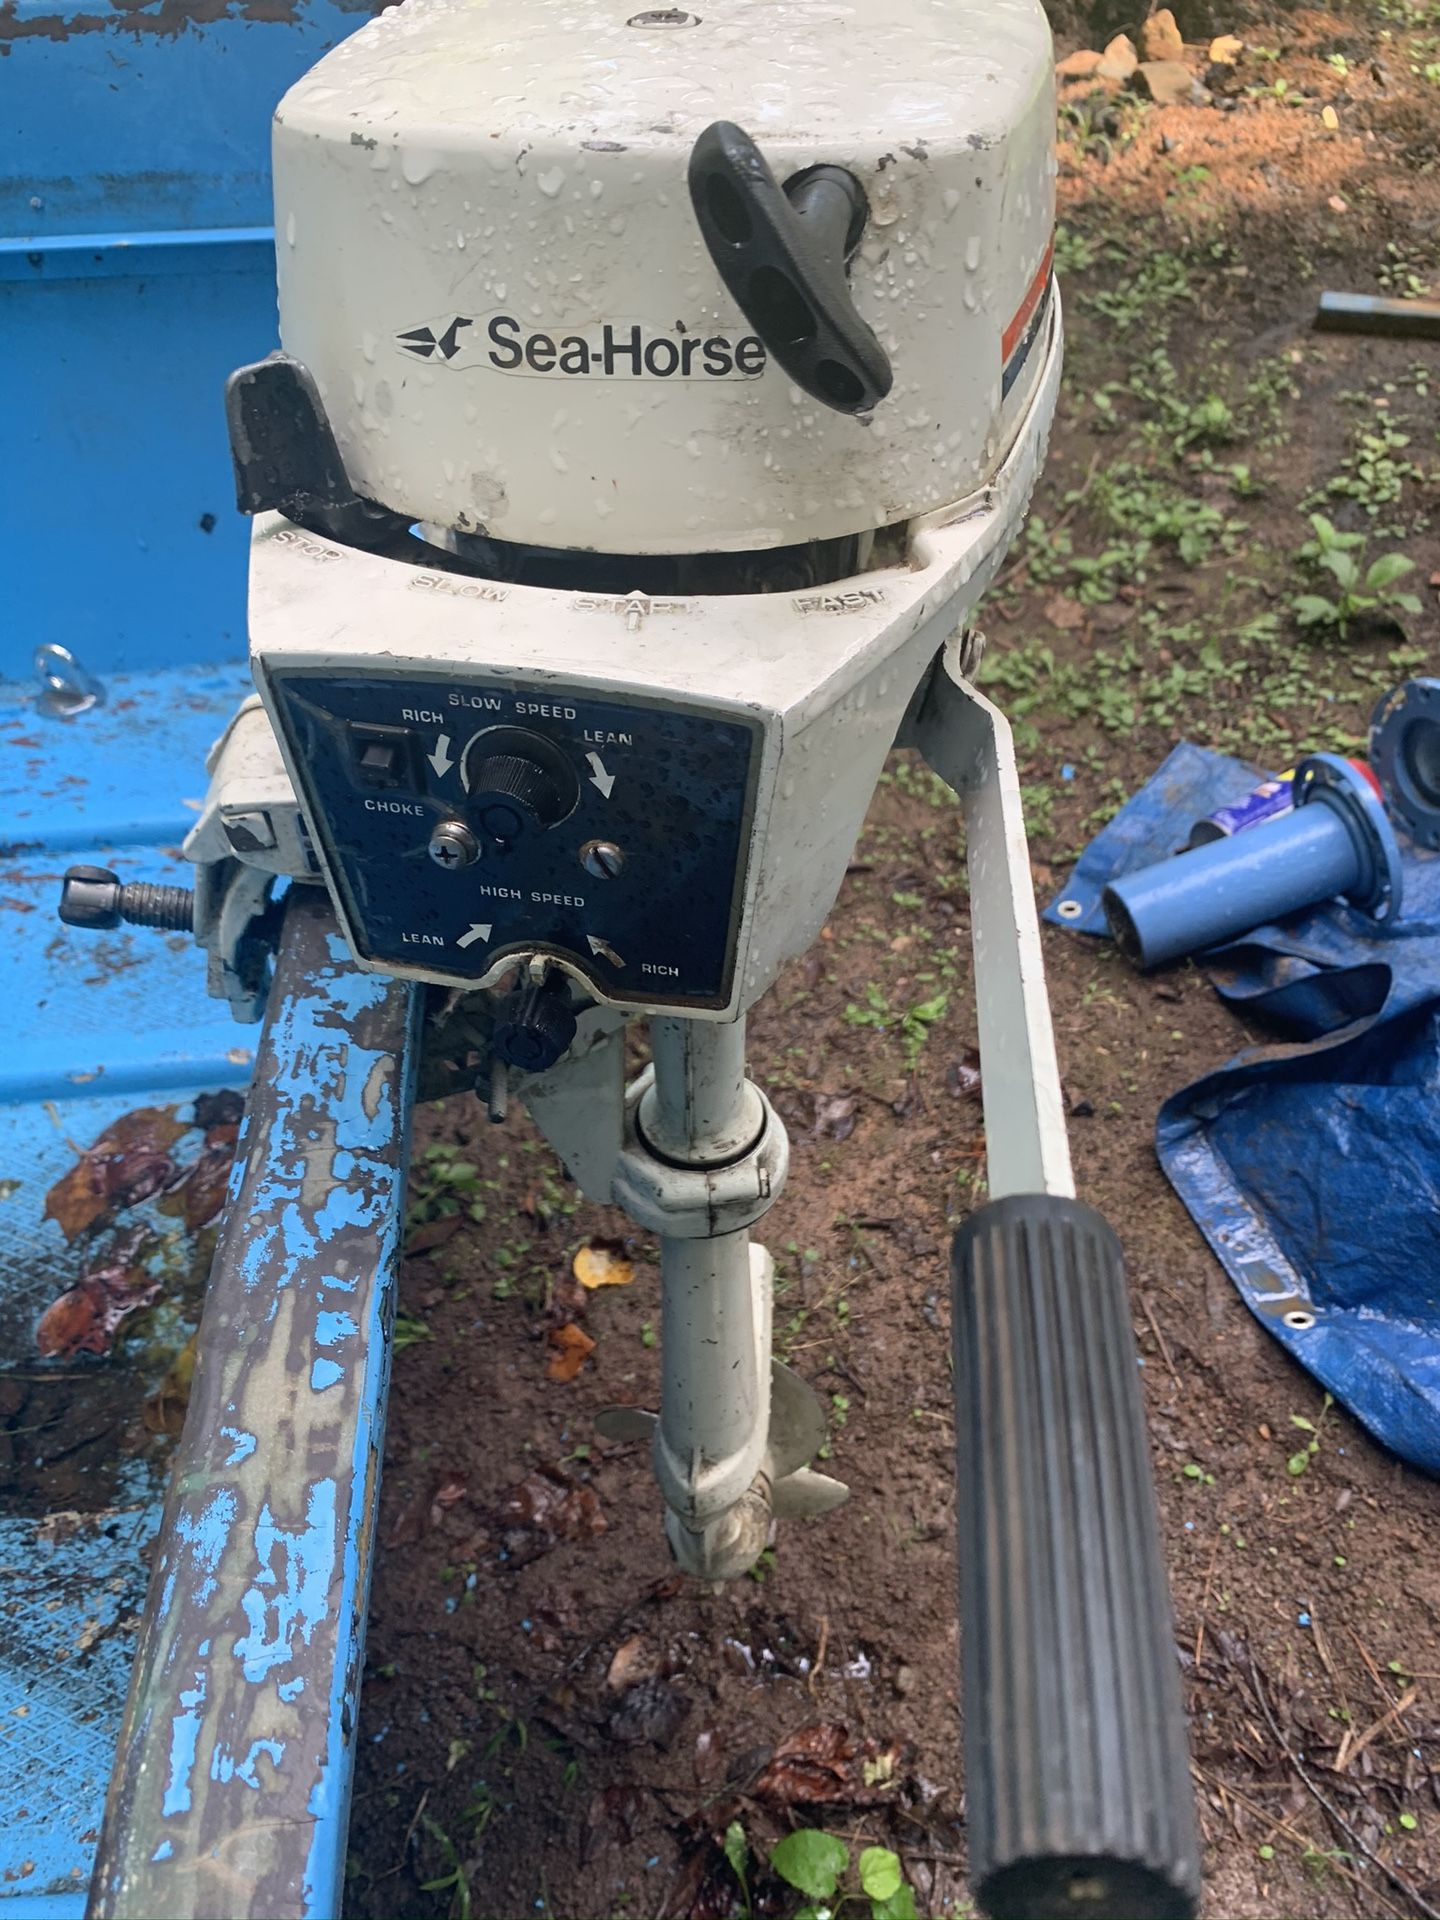 Johnson Outboard 2hp AND BOAT